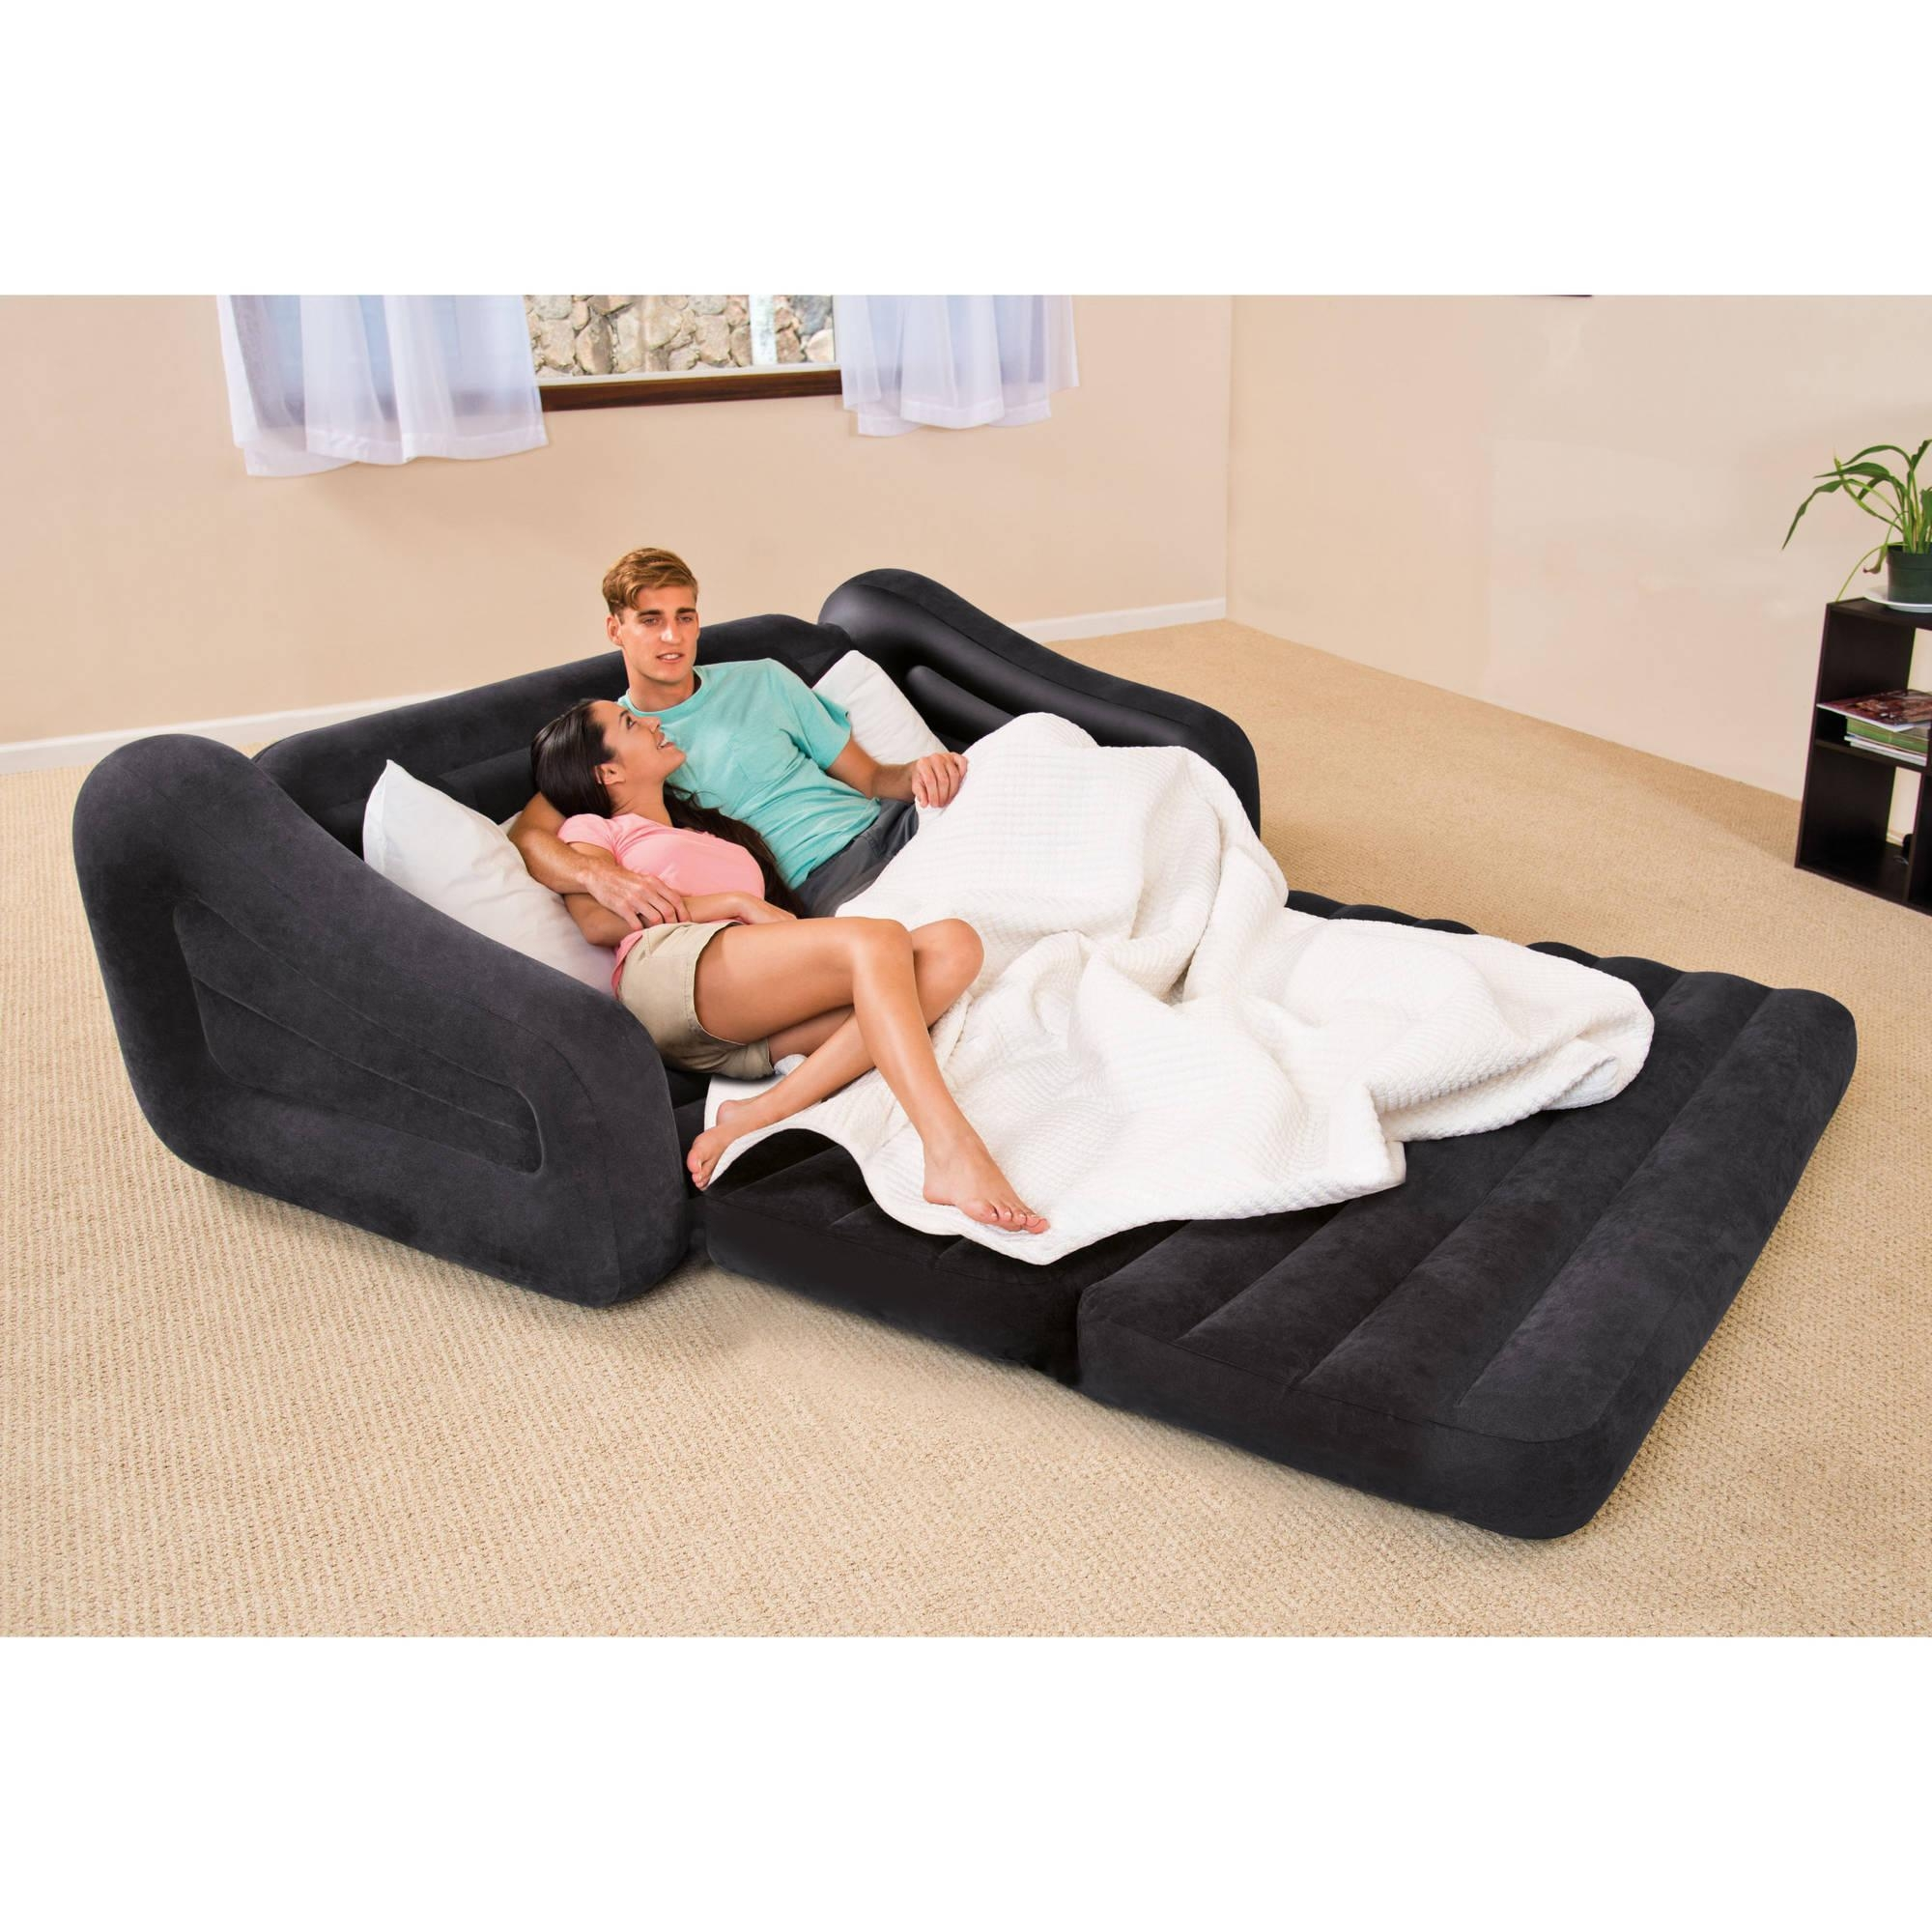 Intex Queen Inflatable Pull Out Sofa Bed – Walmart Throughout Queen Sofa Beds (View 8 of 20)